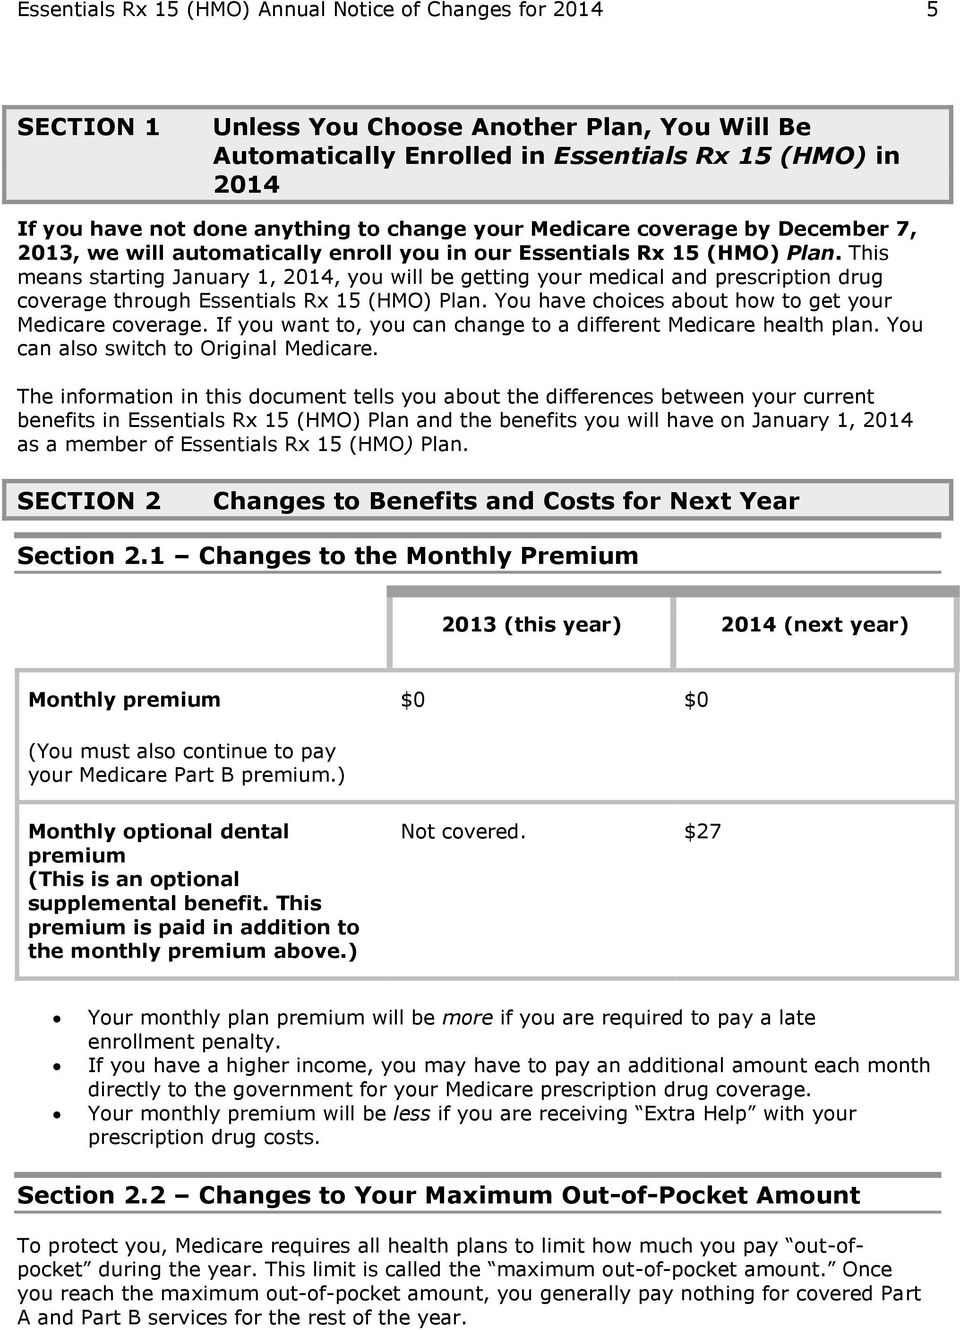 This means starting January 1, 2014, you will be getting your medical and prescription drug coverage through Essentials Rx 15 (HMO) Plan. You have choices about how to get your Medicare coverage.